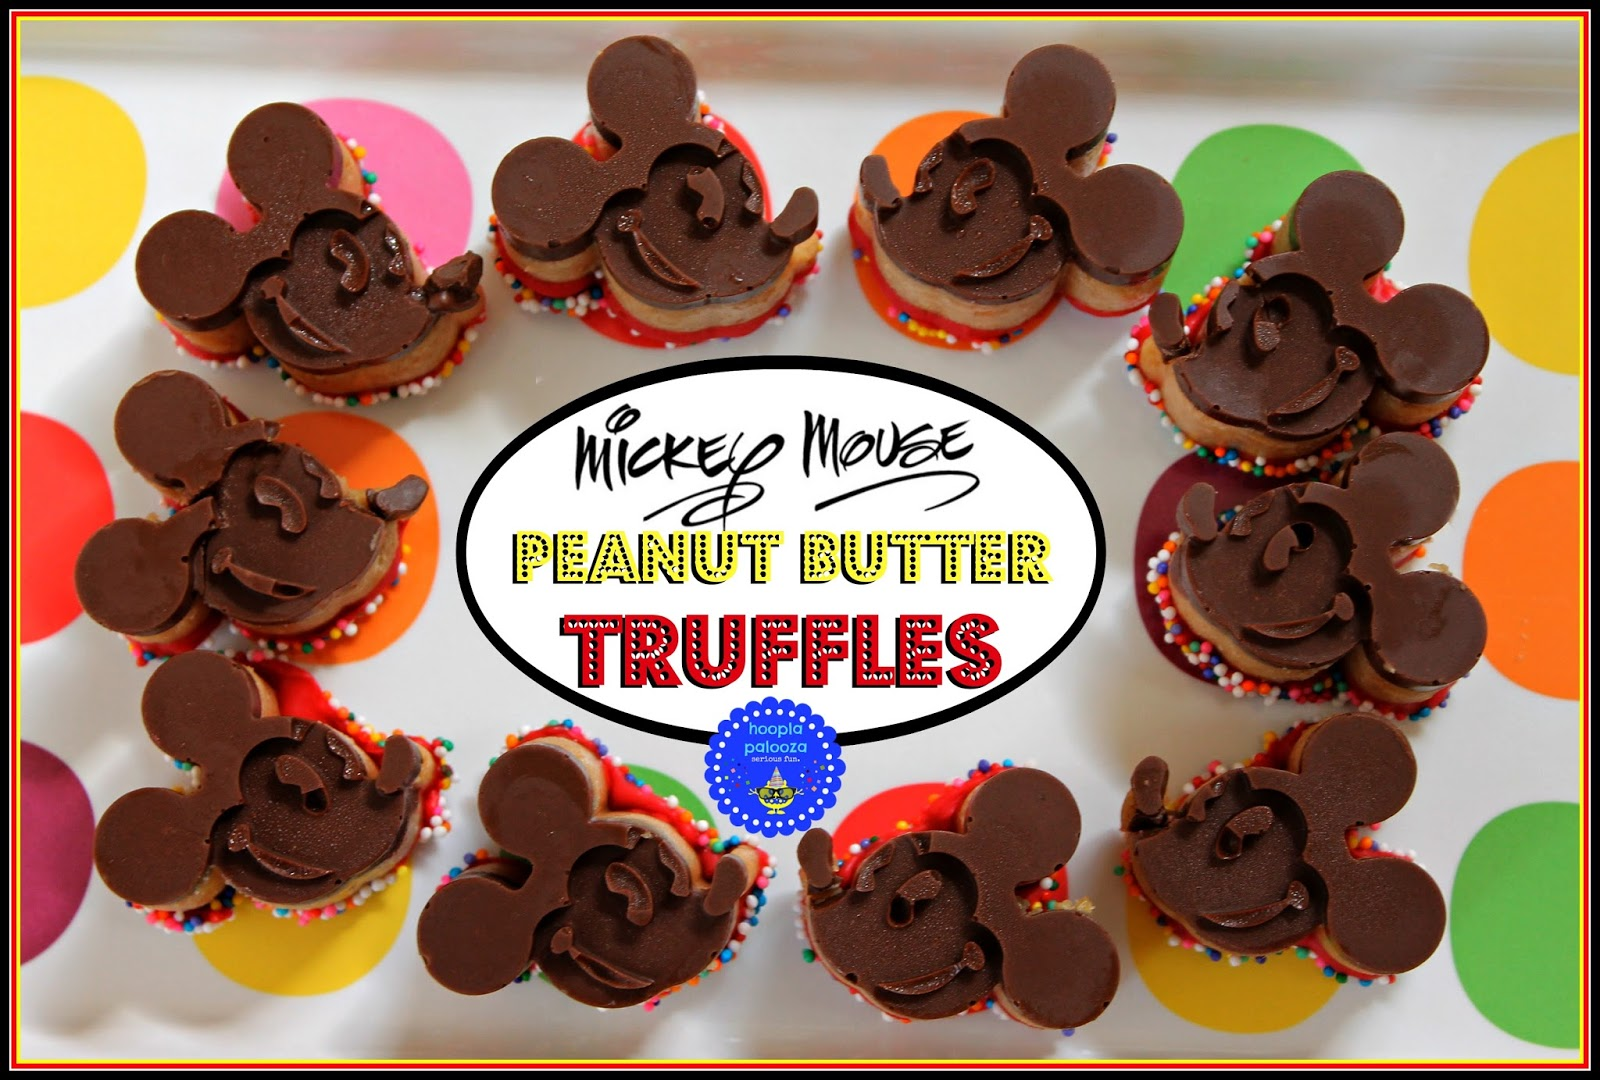 Mickey Mouse Peanut Butter Truffles